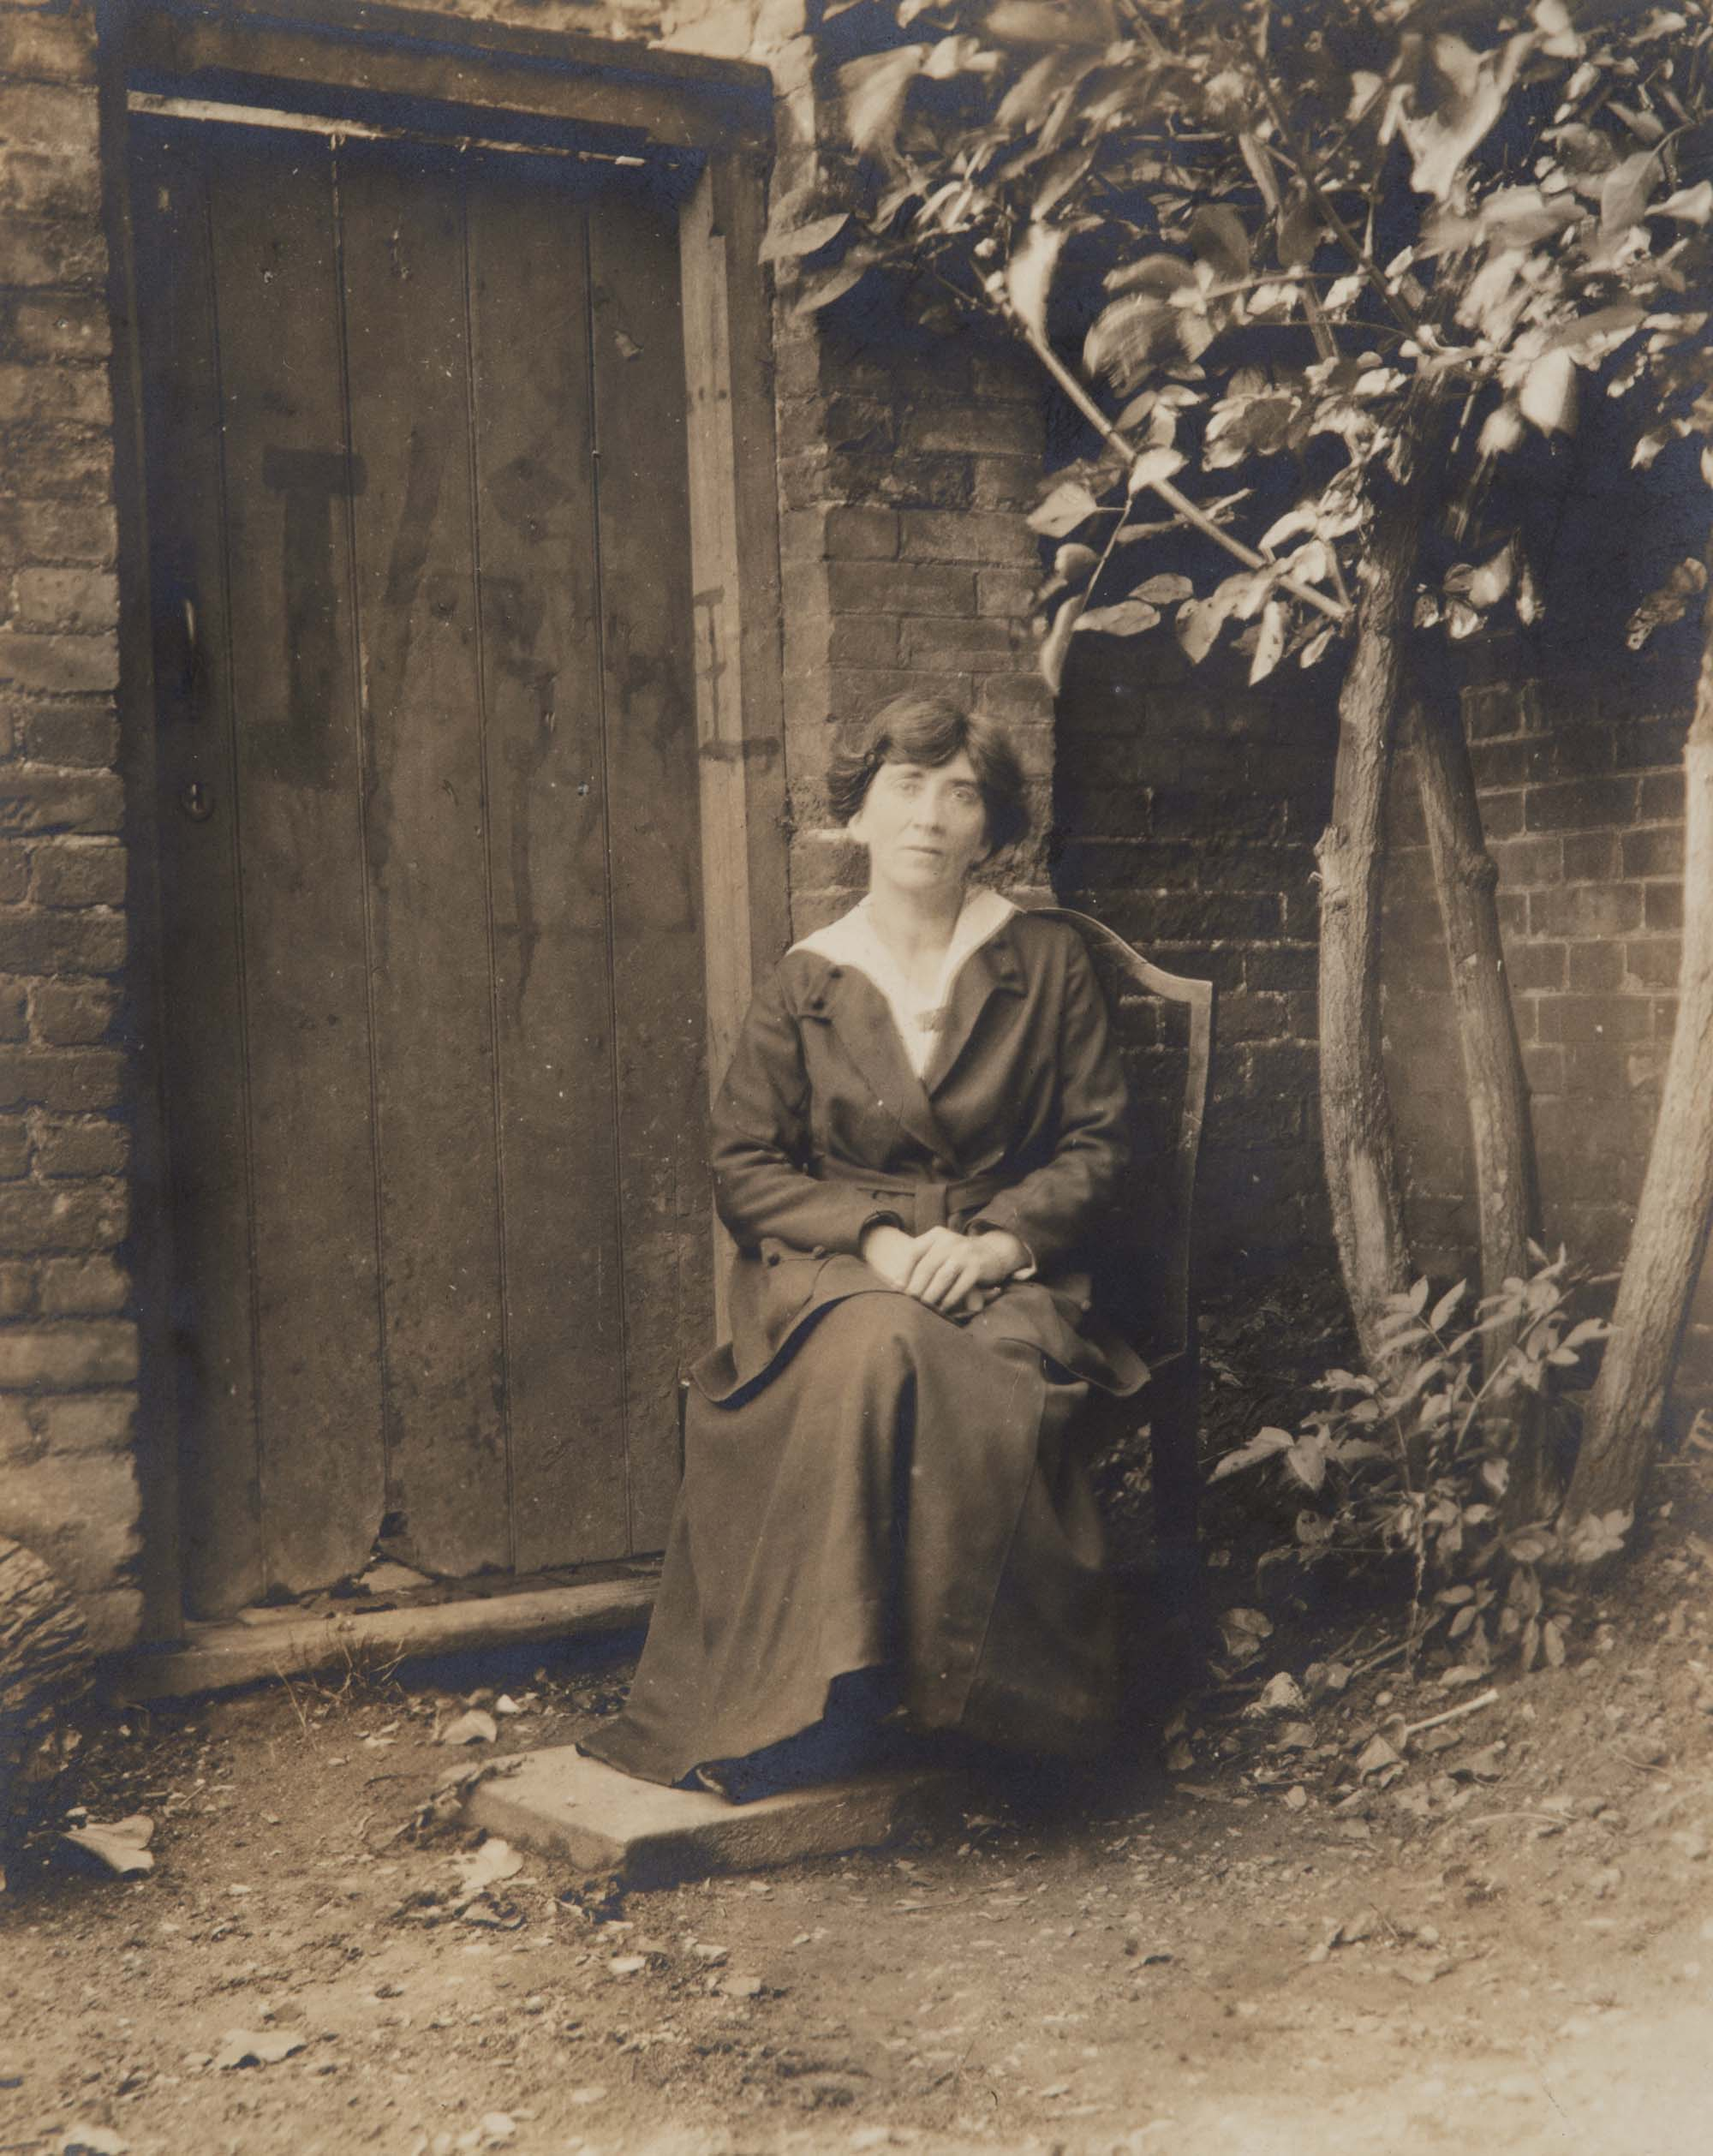 a photo of a woman in edwardian dress seated before a garden door